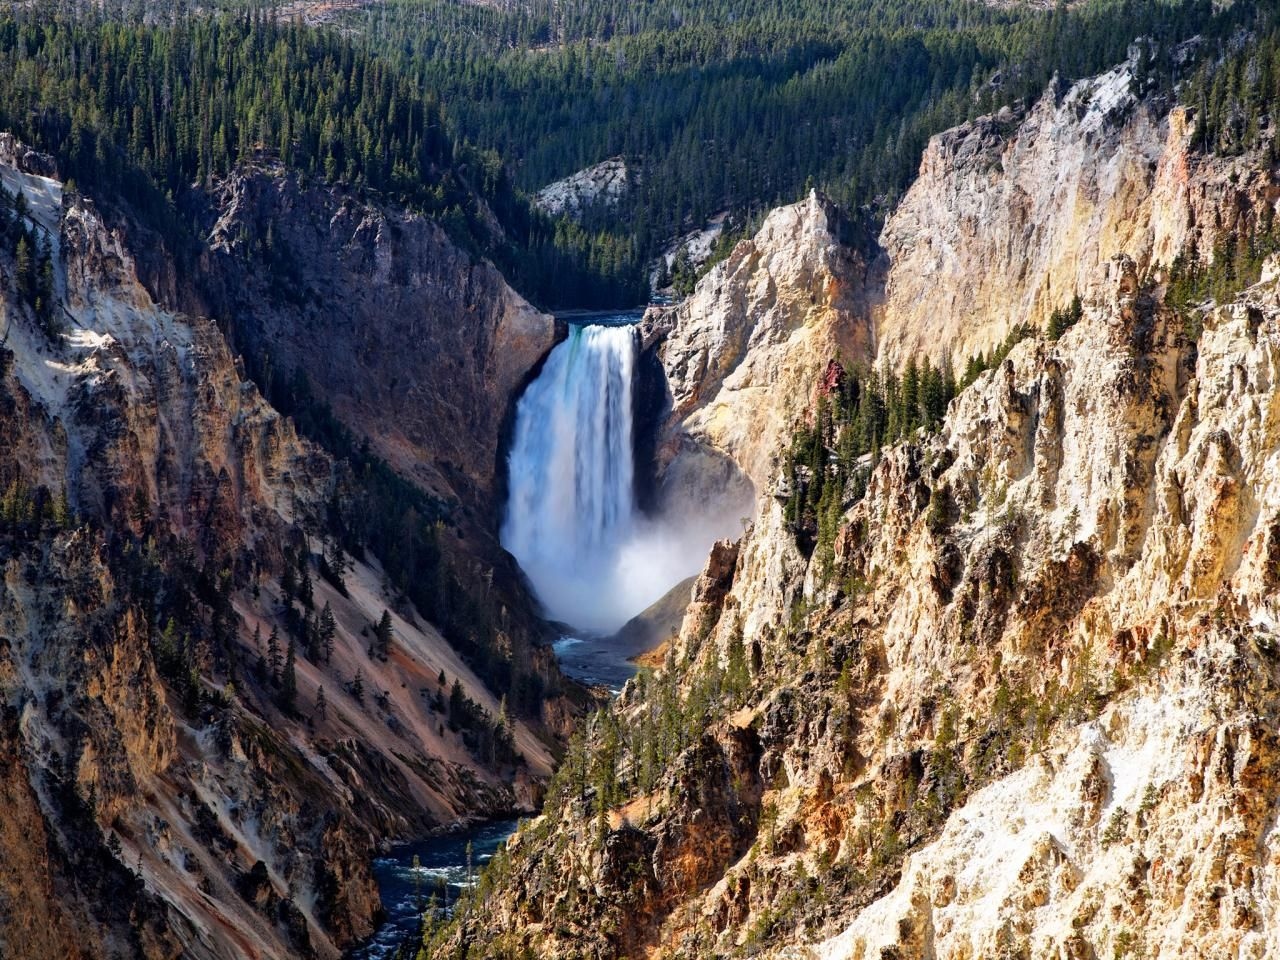 Best Yellowstone National Park Images On Pinterest - Us national parks yellowstone